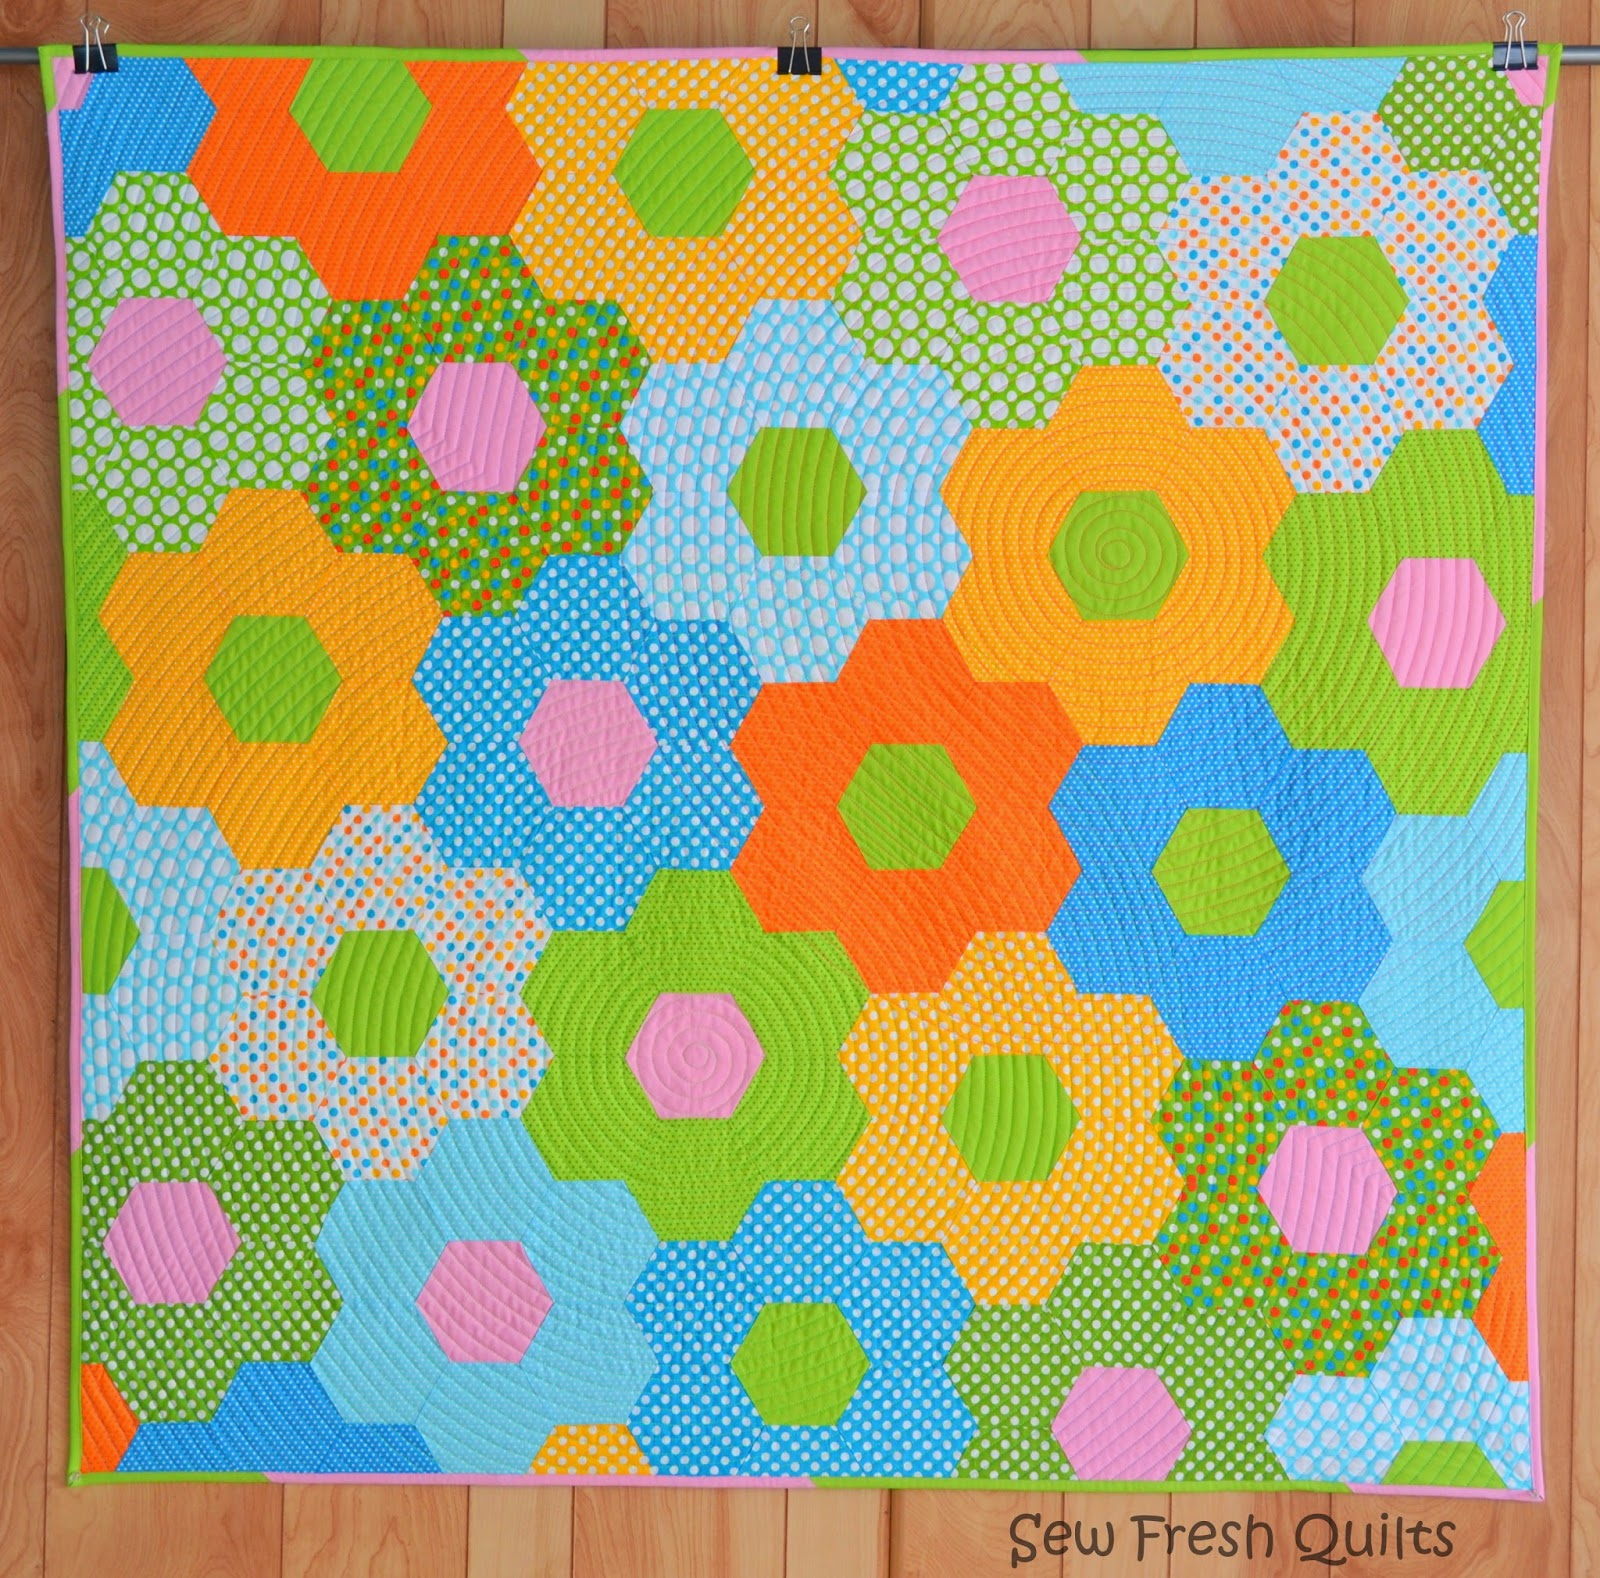 http://sewfreshquilts.blogspot.ca/2014/01/tutorial-for-sewing-hexagons-by-machine.html